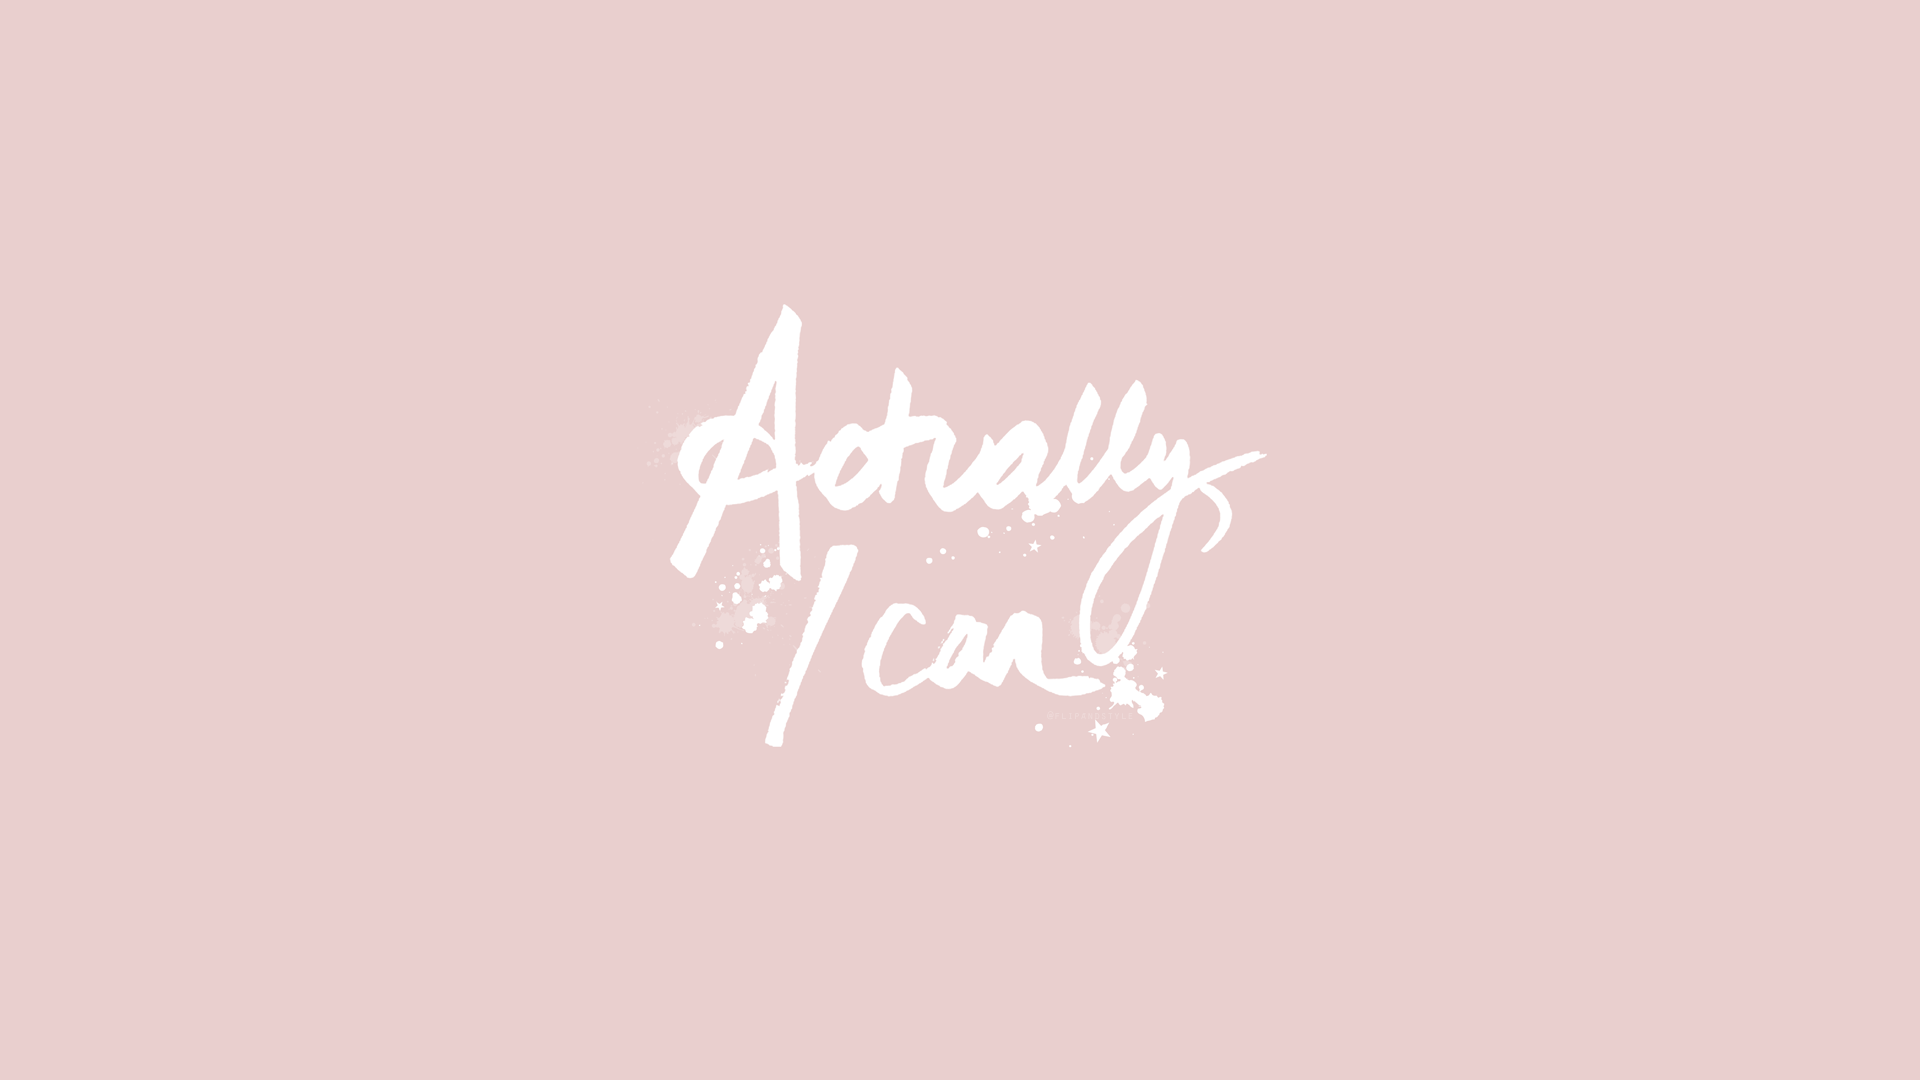 Pastel Pink Aesthetic Laptop Wallpapers Top Free Pastel Pink Aesthetic Laptop Backgrounds Wallpaperaccess